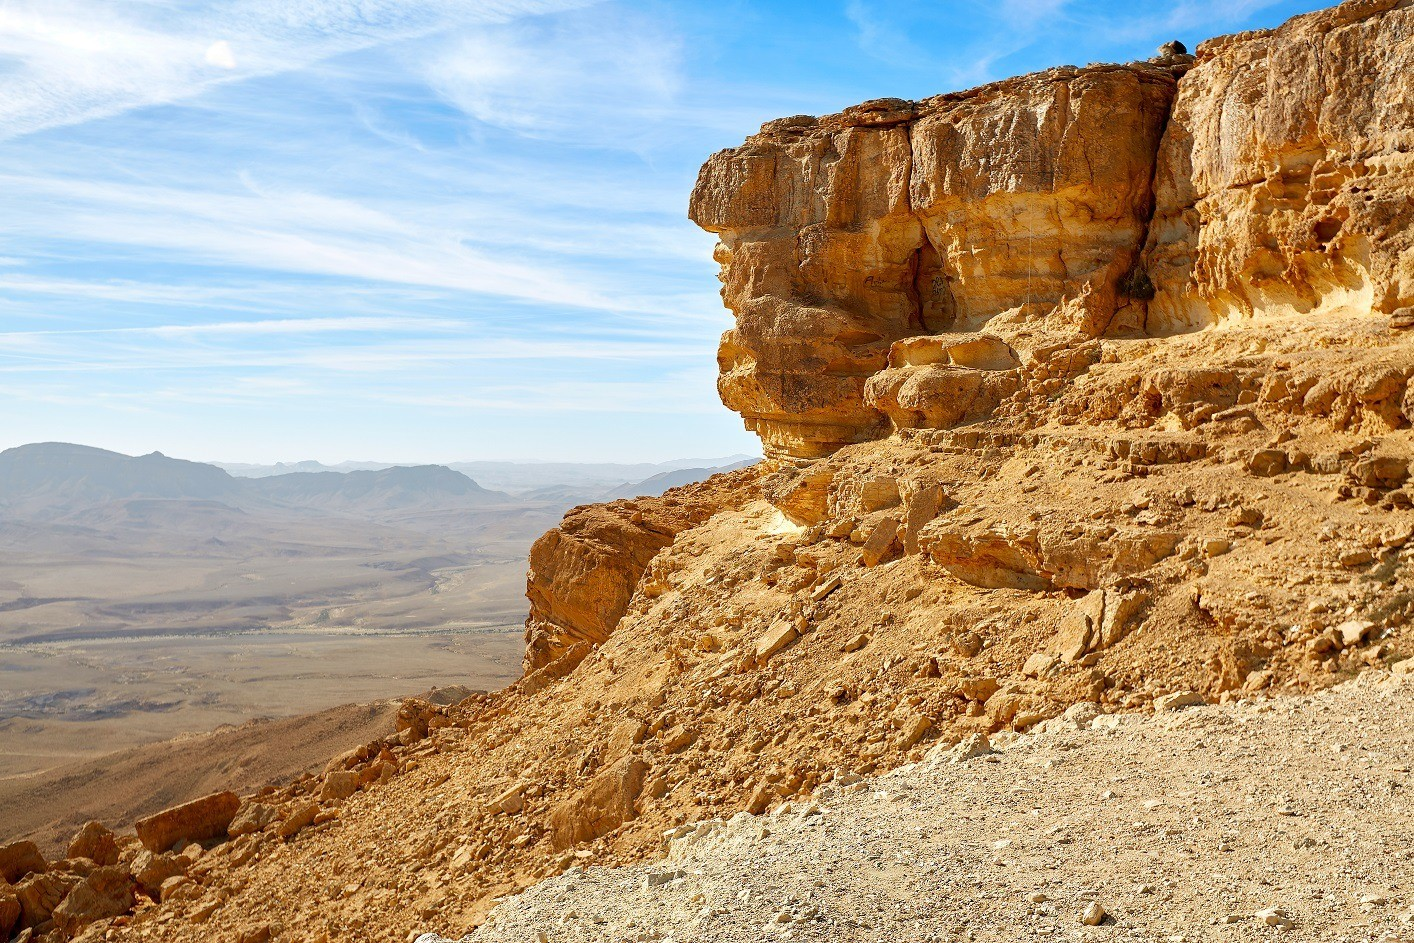 Makhtesh Ramon Crater in Israel